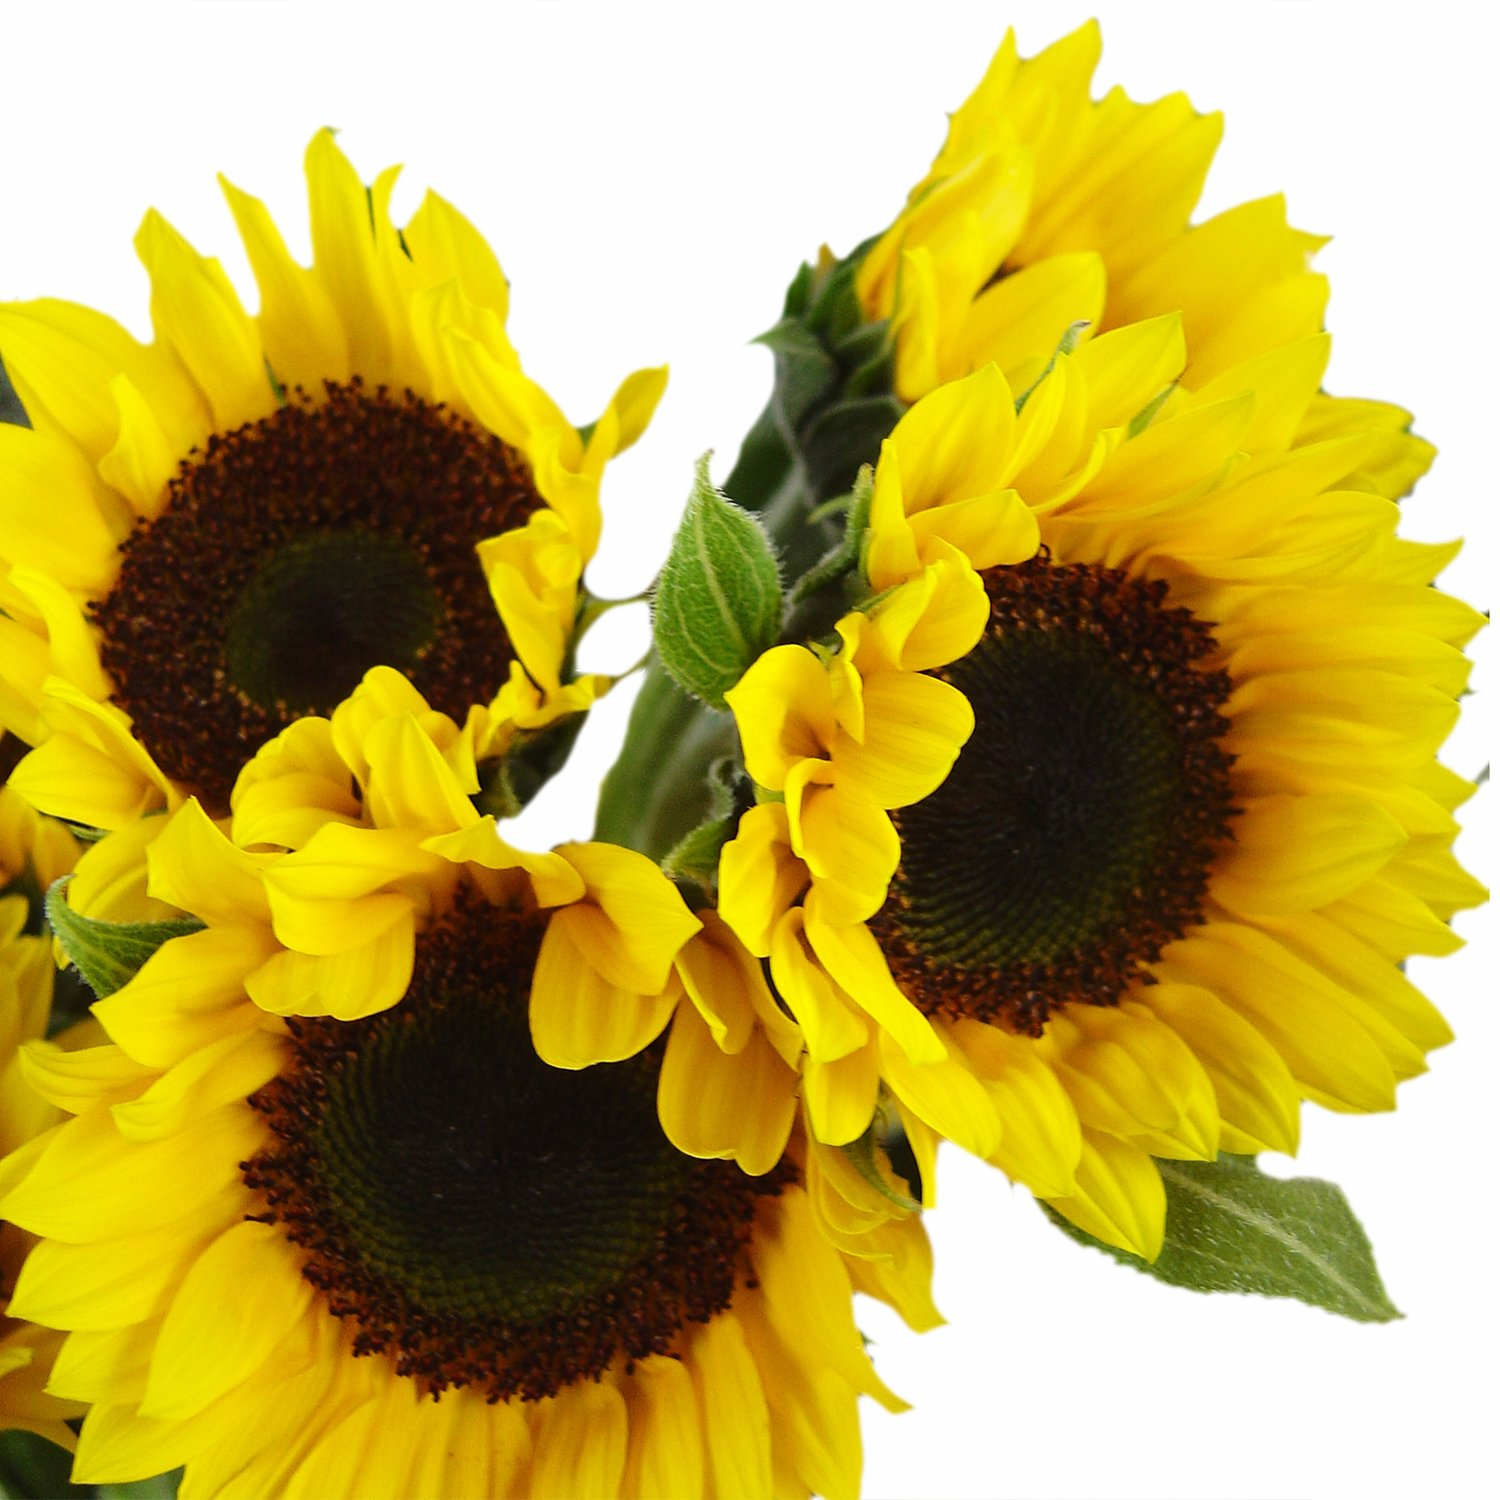 GlobalRose 15 Stems of Sunflowers Brown Center - Fresh Flowers for Delivery by GlobalRose